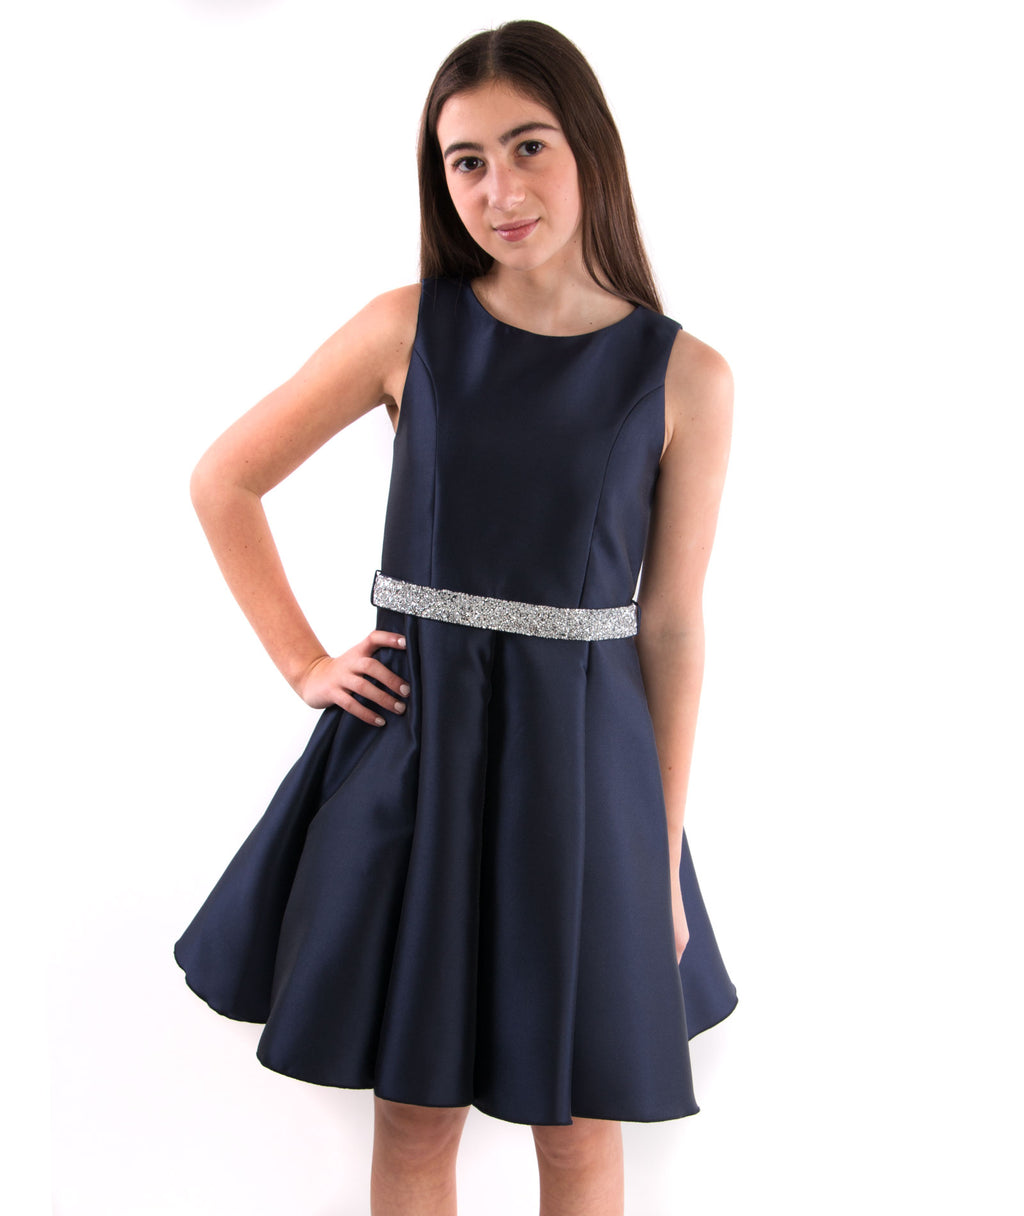 Zoe Ltd. Girls Navy Satin Dress with Crystal Belt - Frankie's on the Park